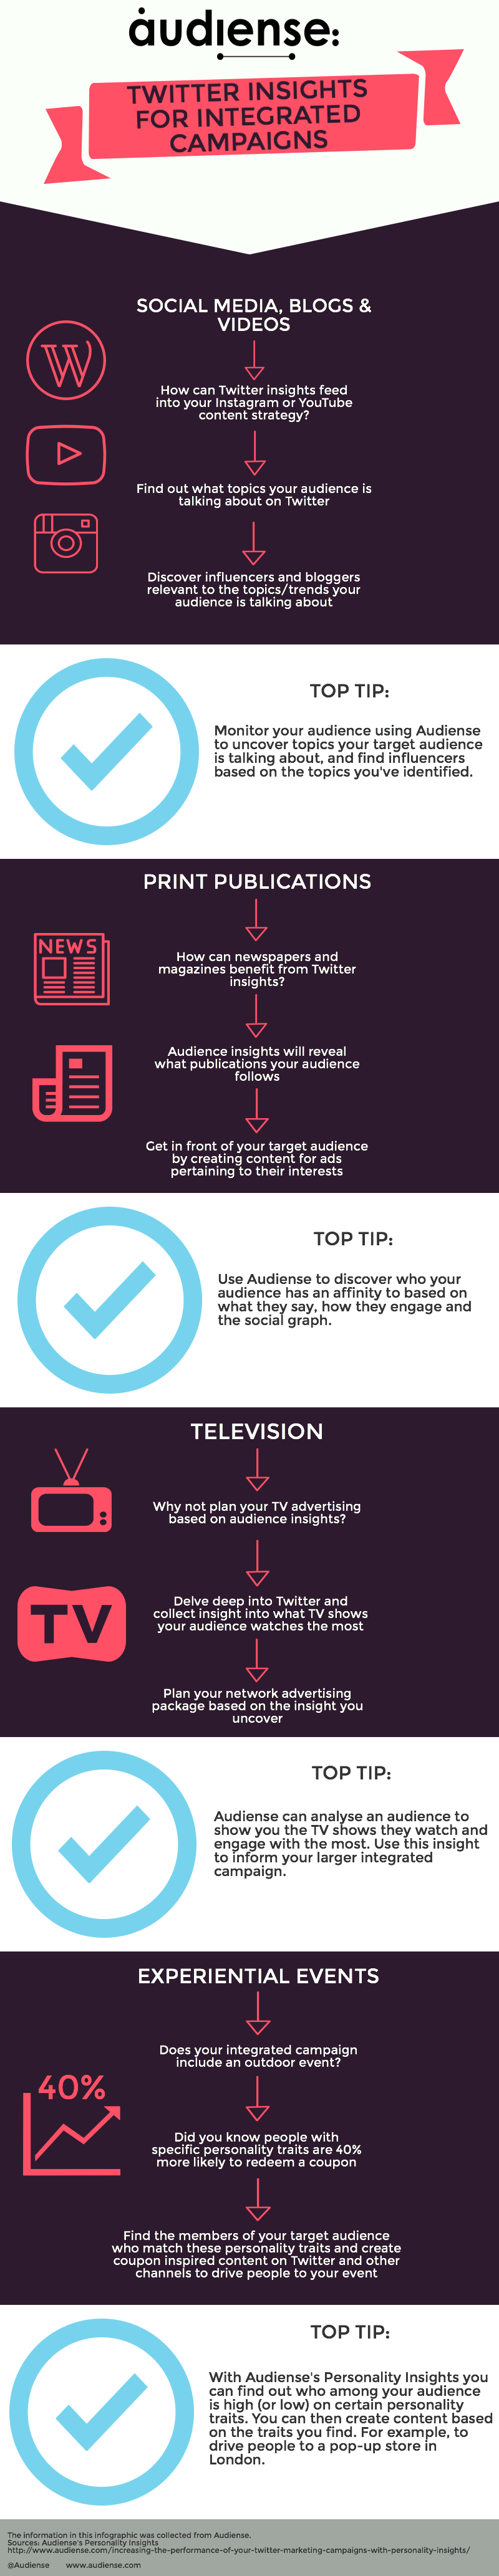 infographic-for-visual-guide-audiense